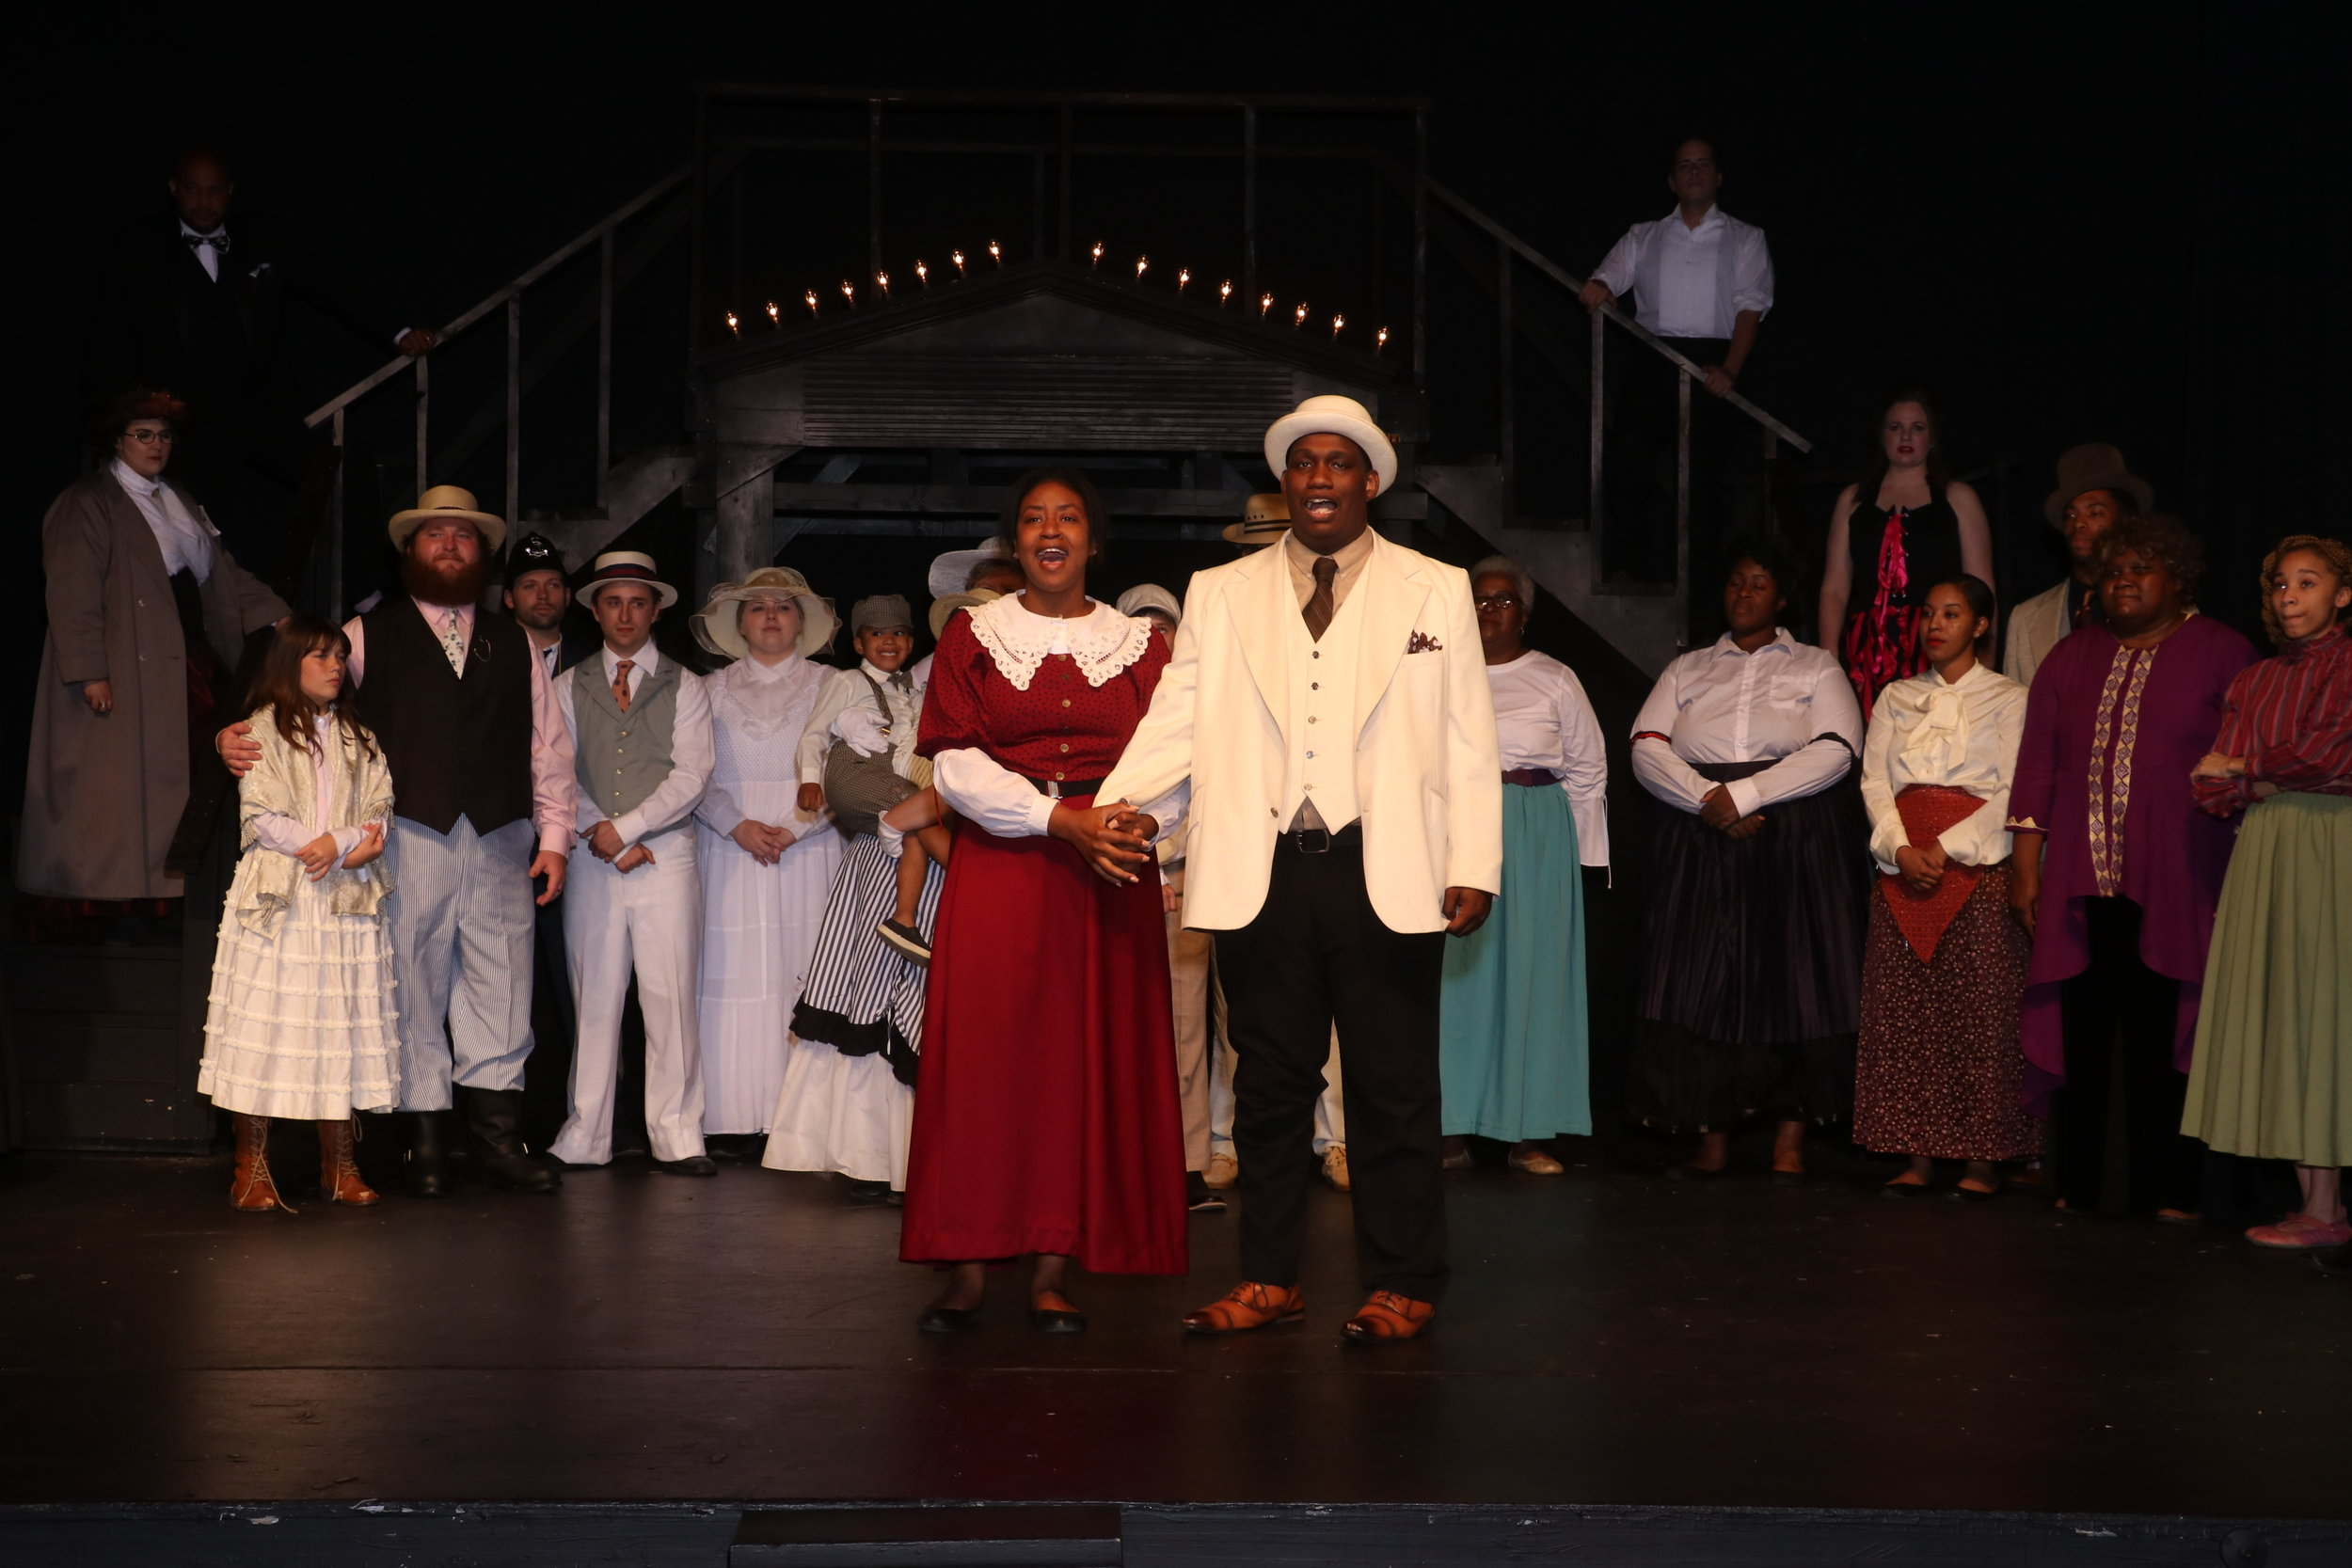 Ragtime - Book and Lyrics by Terrence McNallyMusic by Stephen Flaherty and Lynn Ahrens